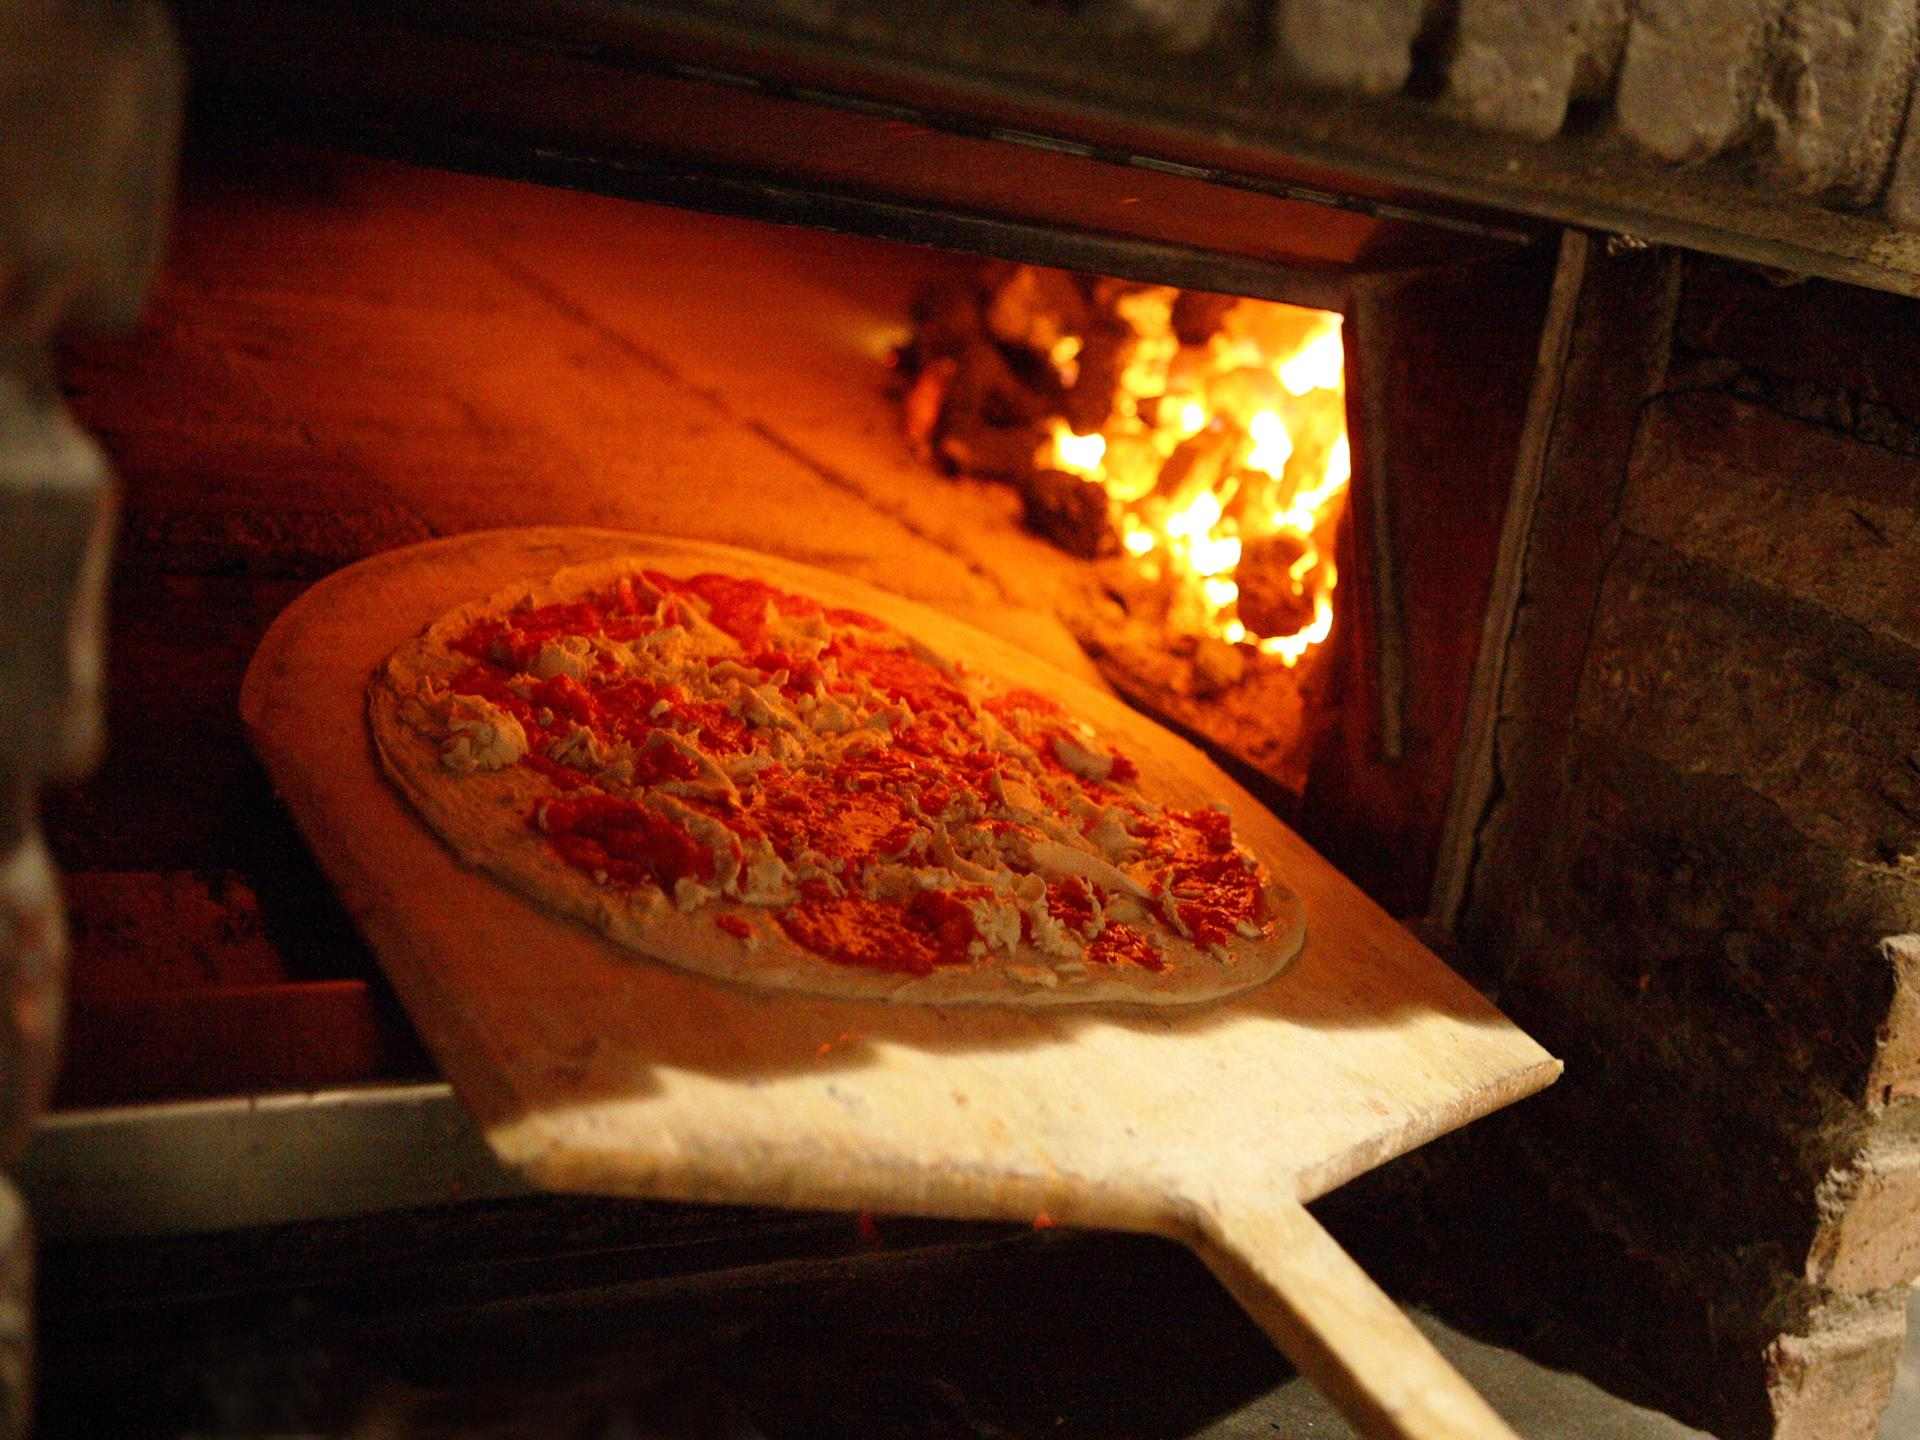 pizza being put into brick oven